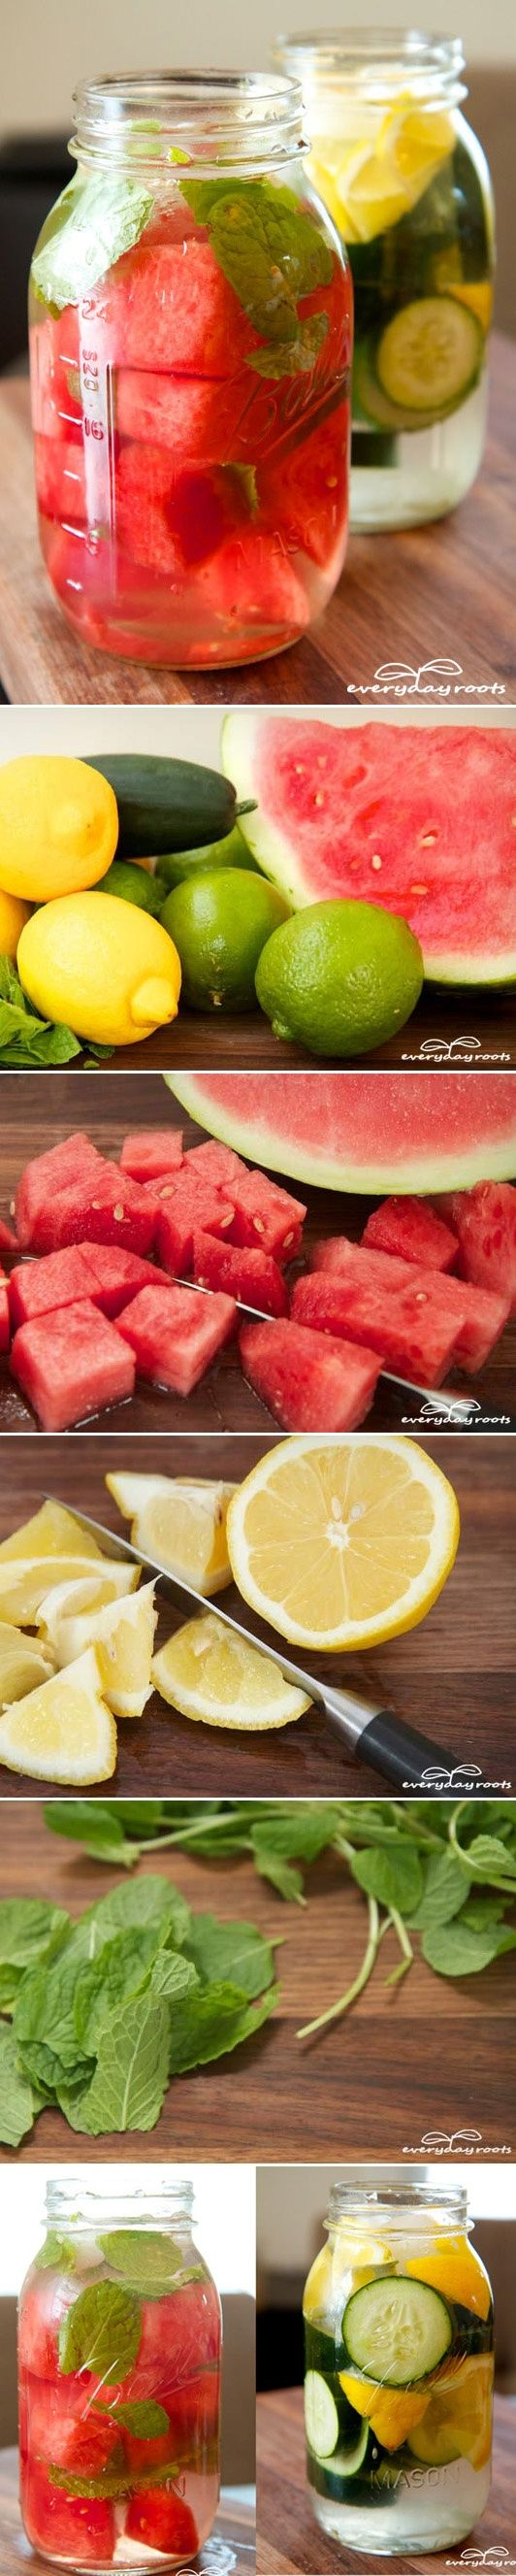 Make Your Own Detox Drink for Daily Enjoyment Cleansing. Recipe. Included: Watermelon/cucumber. lemon/lime. mint leaves. and water